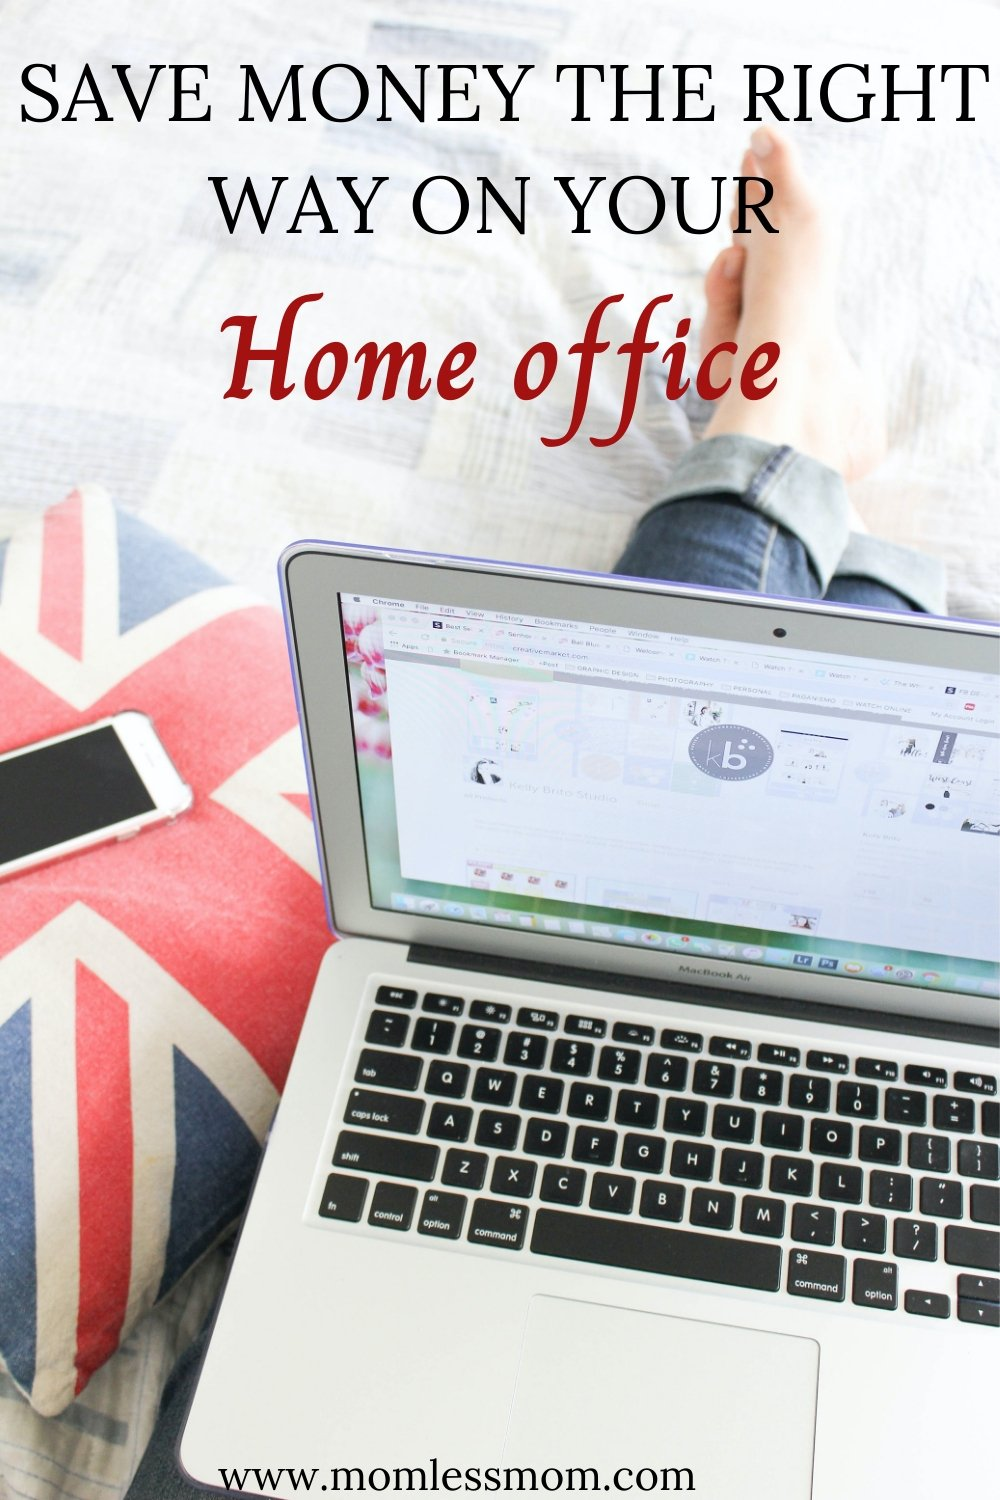 How to Save Money on your Home Office